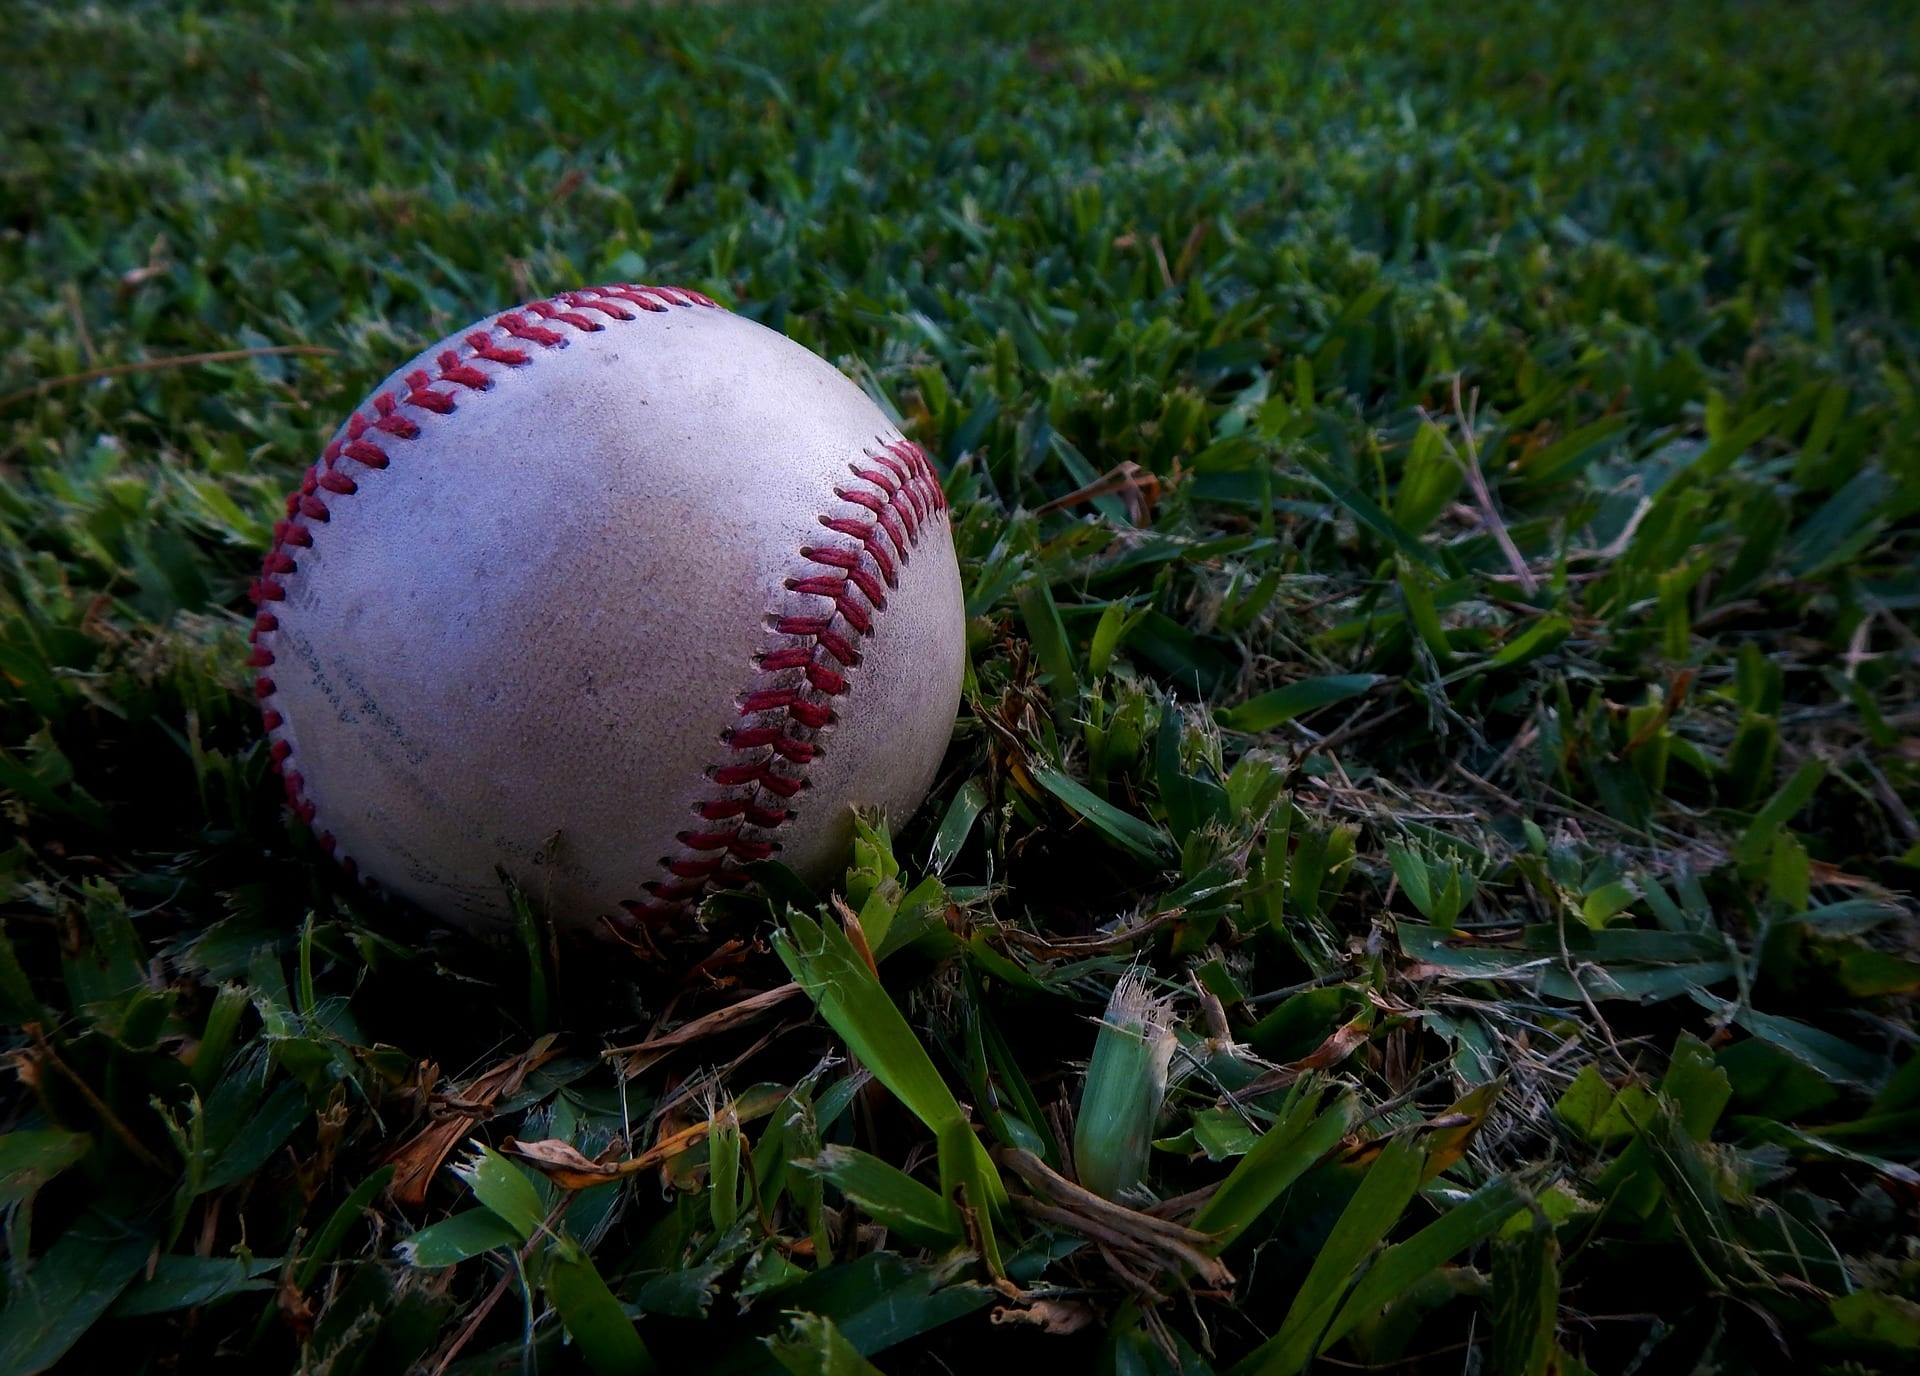 bb993a8f3 Baseball was once considered America s favorite pastime